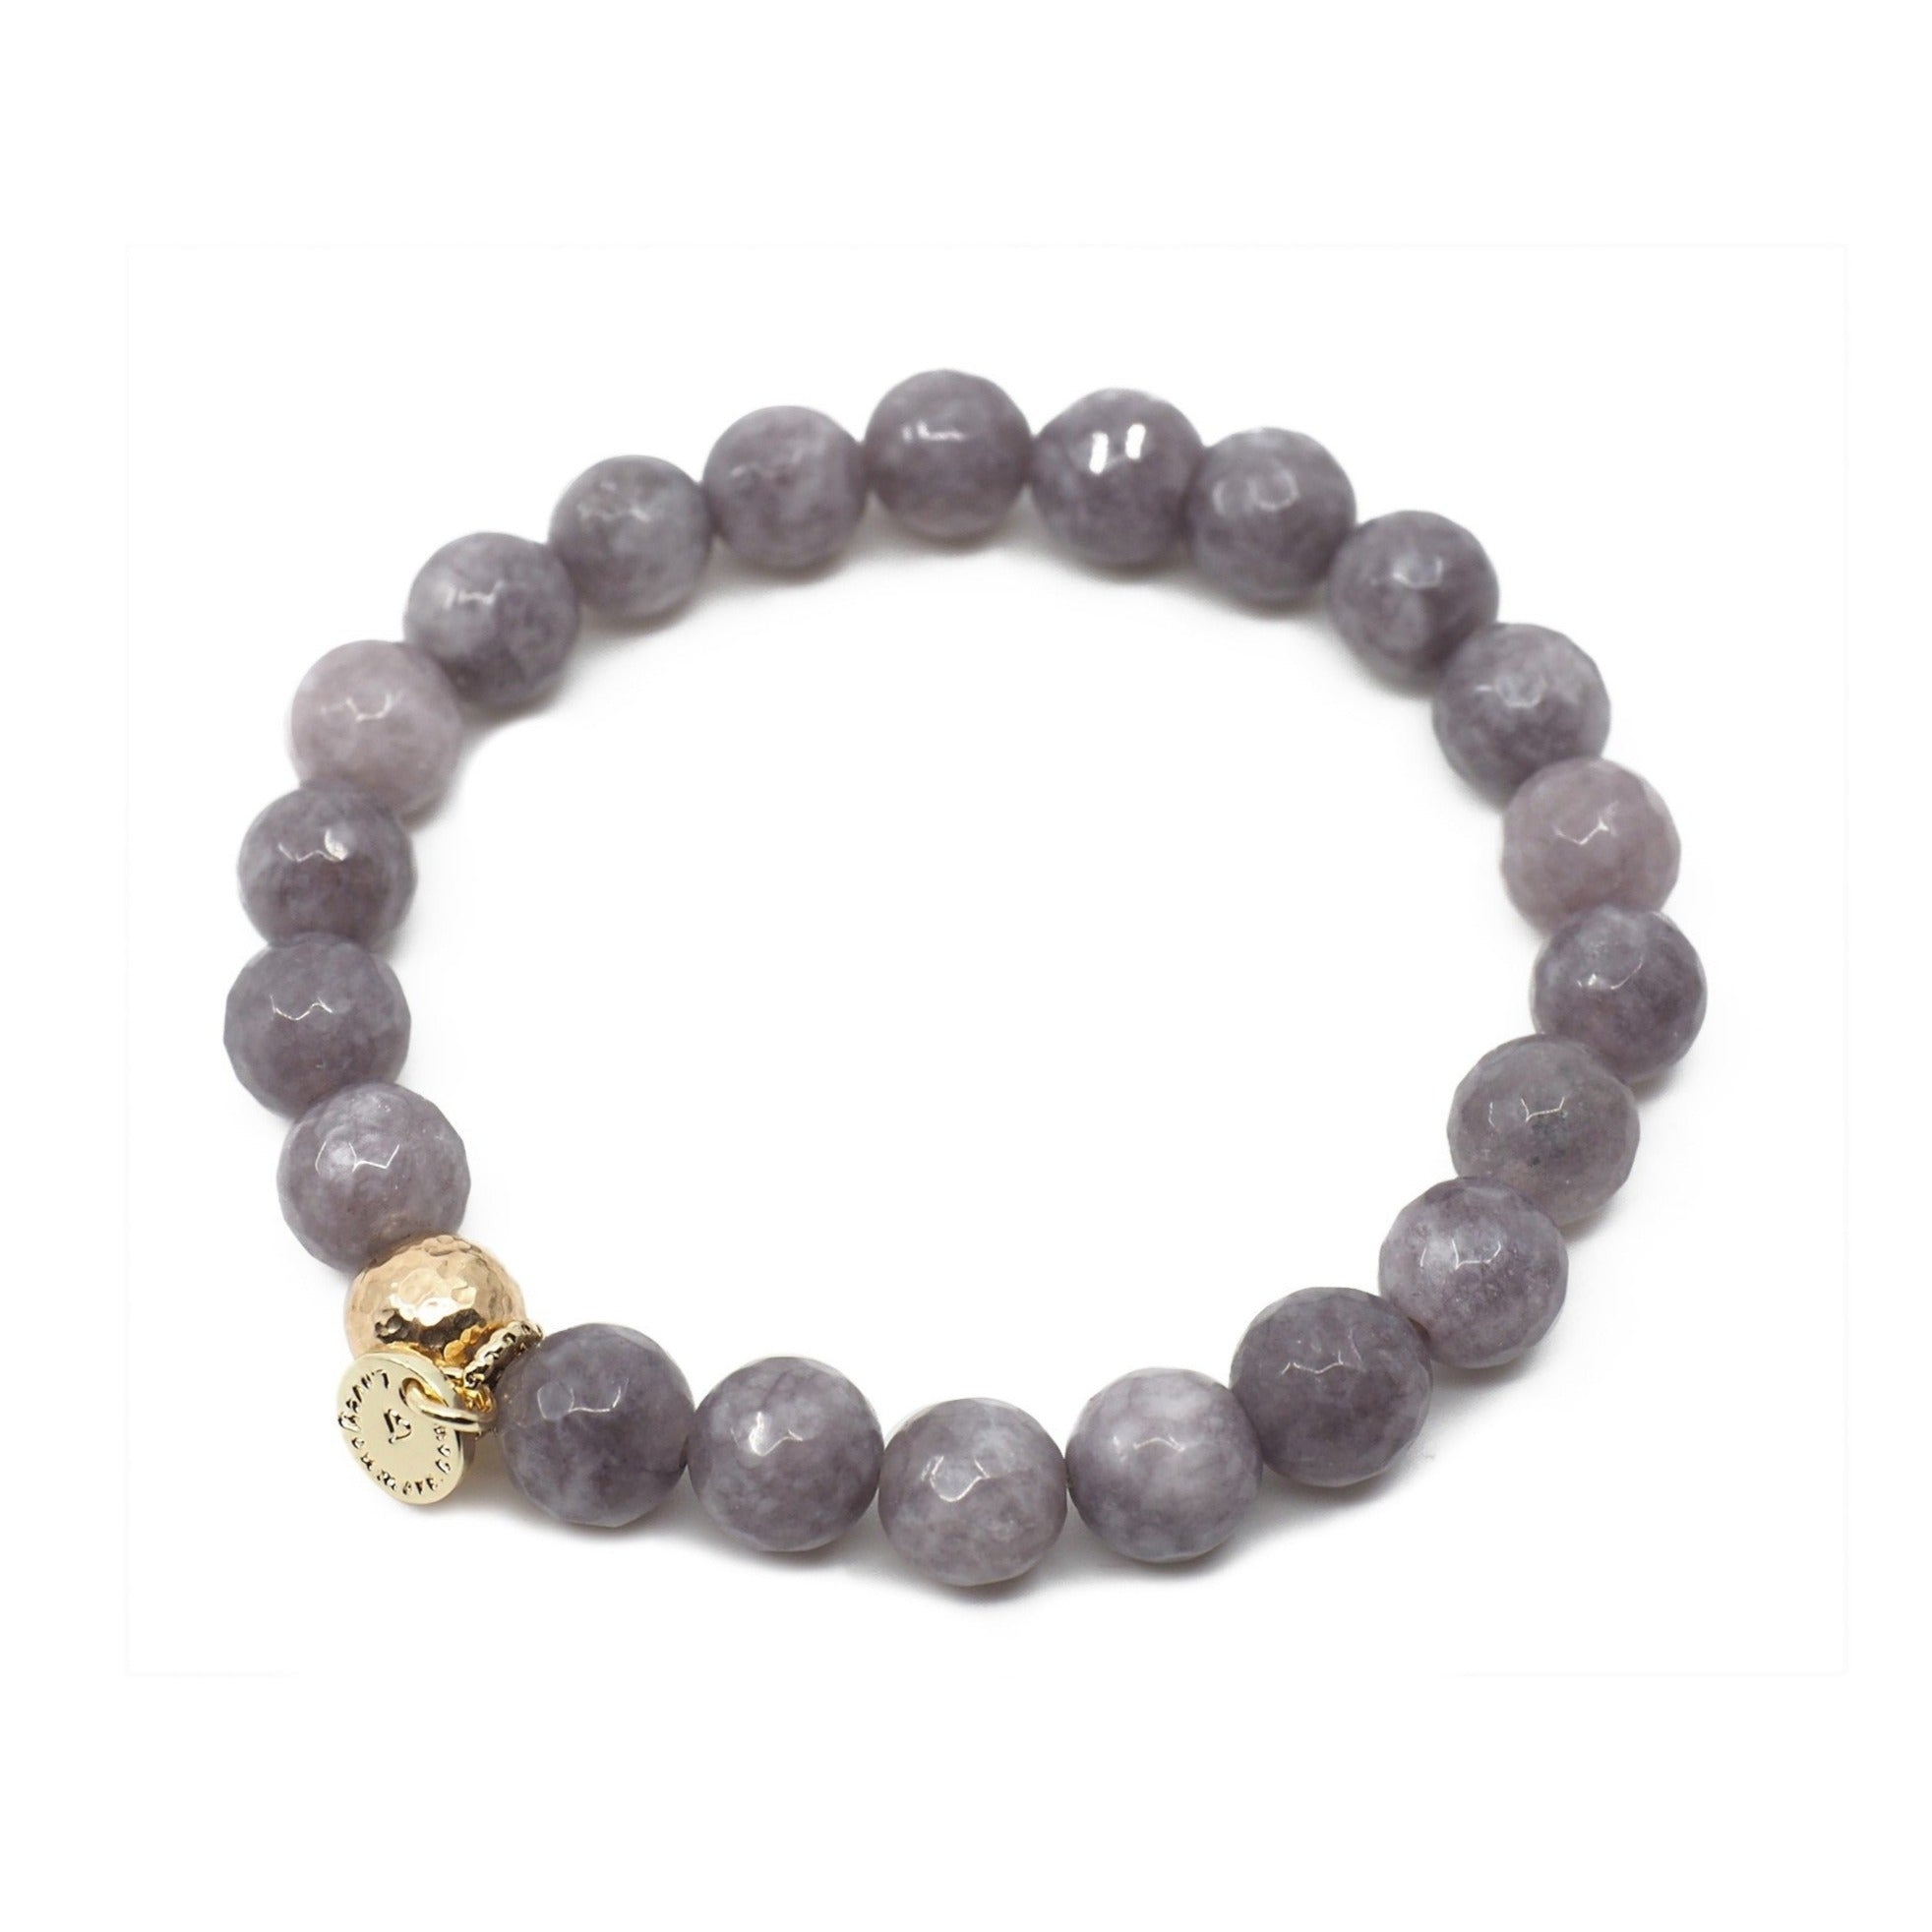 The Luna Bracelet in Geode